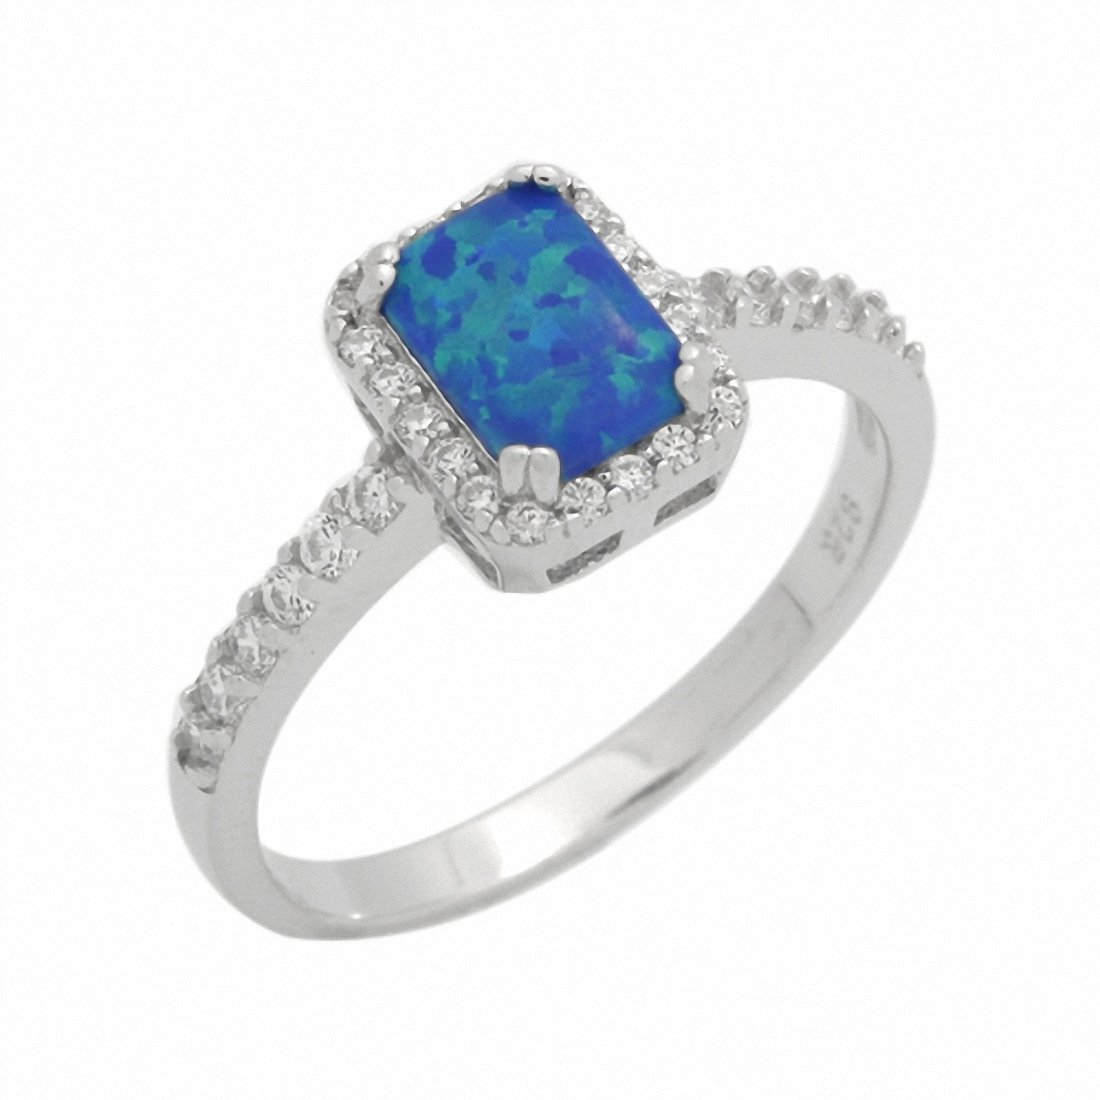 Halo Engagement Ring Radiant Lab Created Blue Opal 925 Sterling Silver